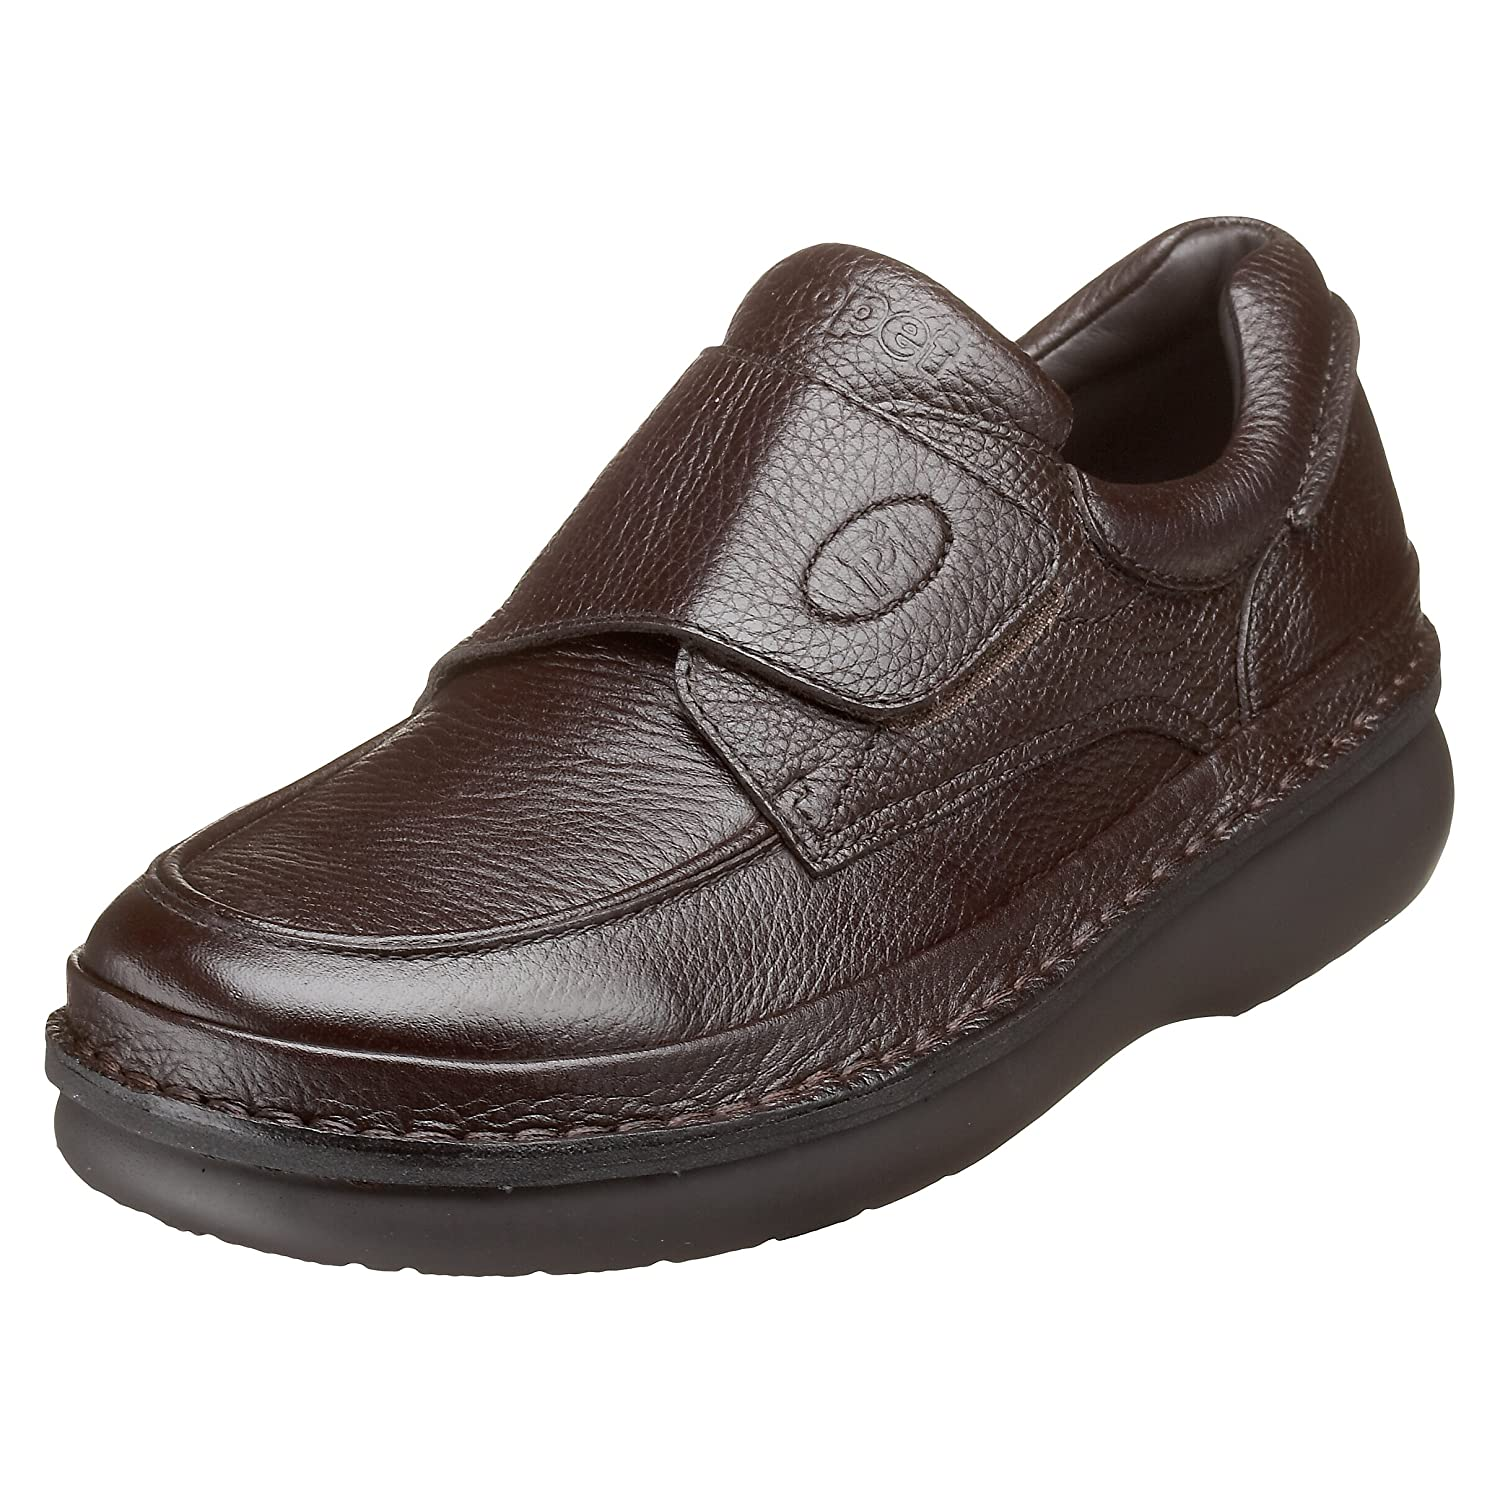 Propet Men's M5015 Scandia Strap Slip-On